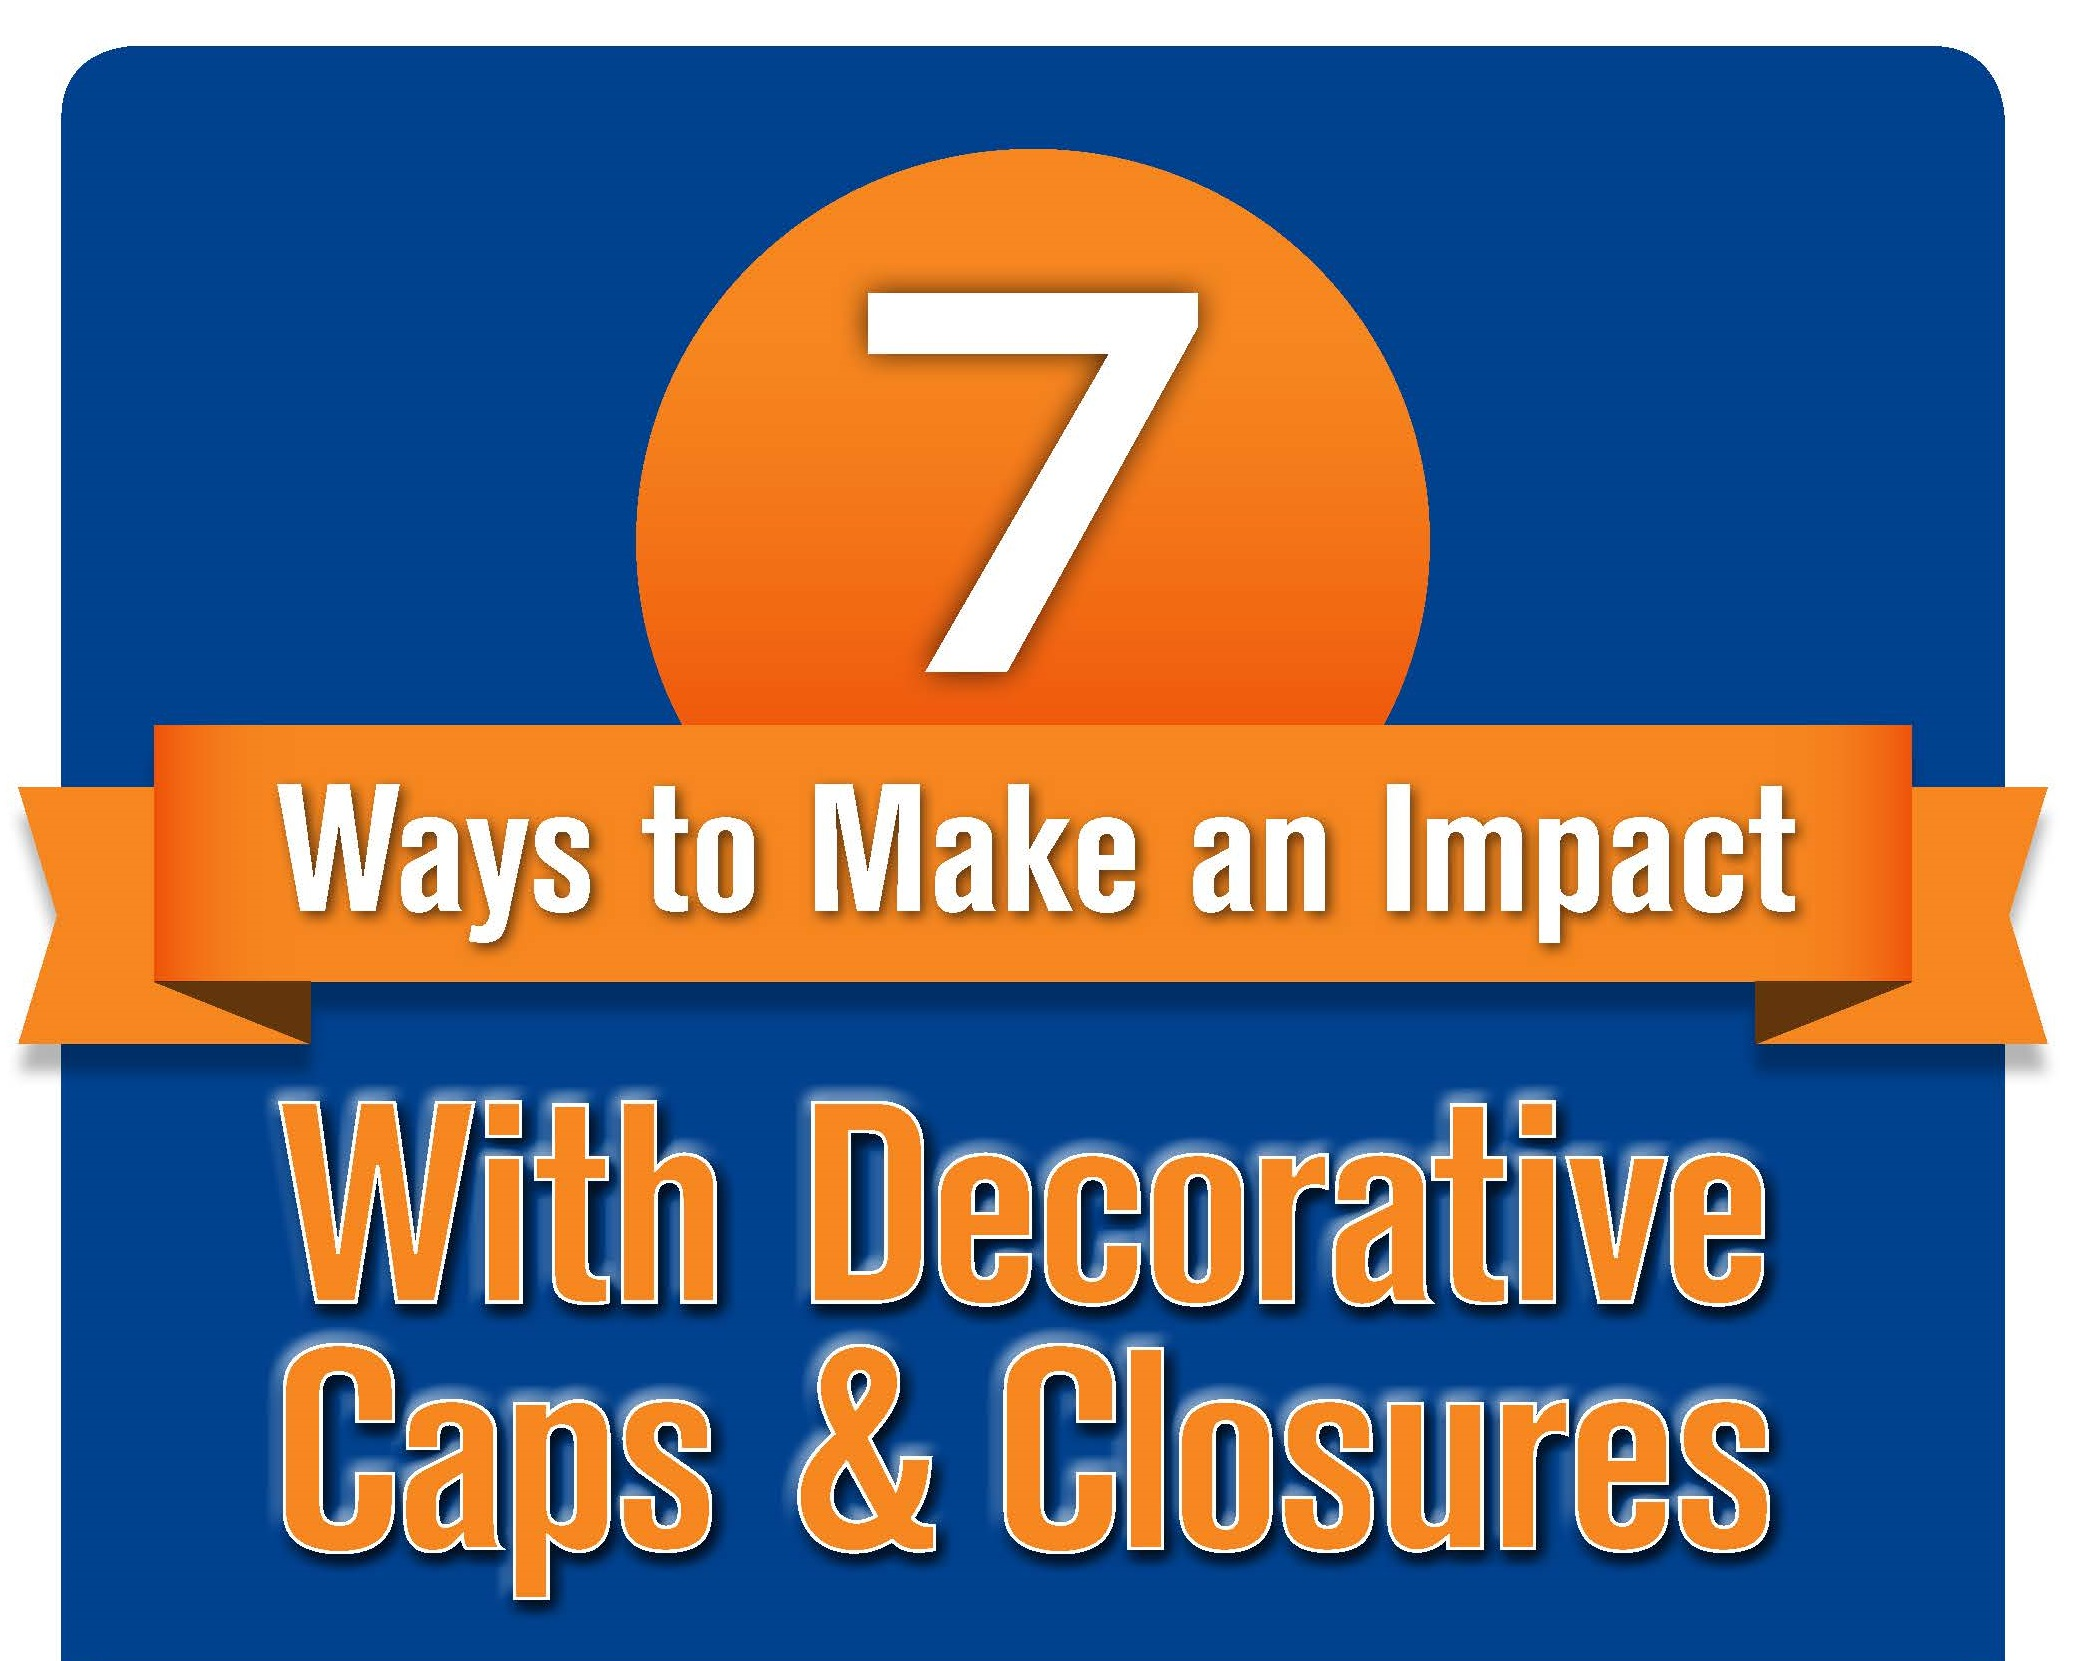 INFOGRAPHIC: 7 Ways to Make an Impact with Decorative Closures